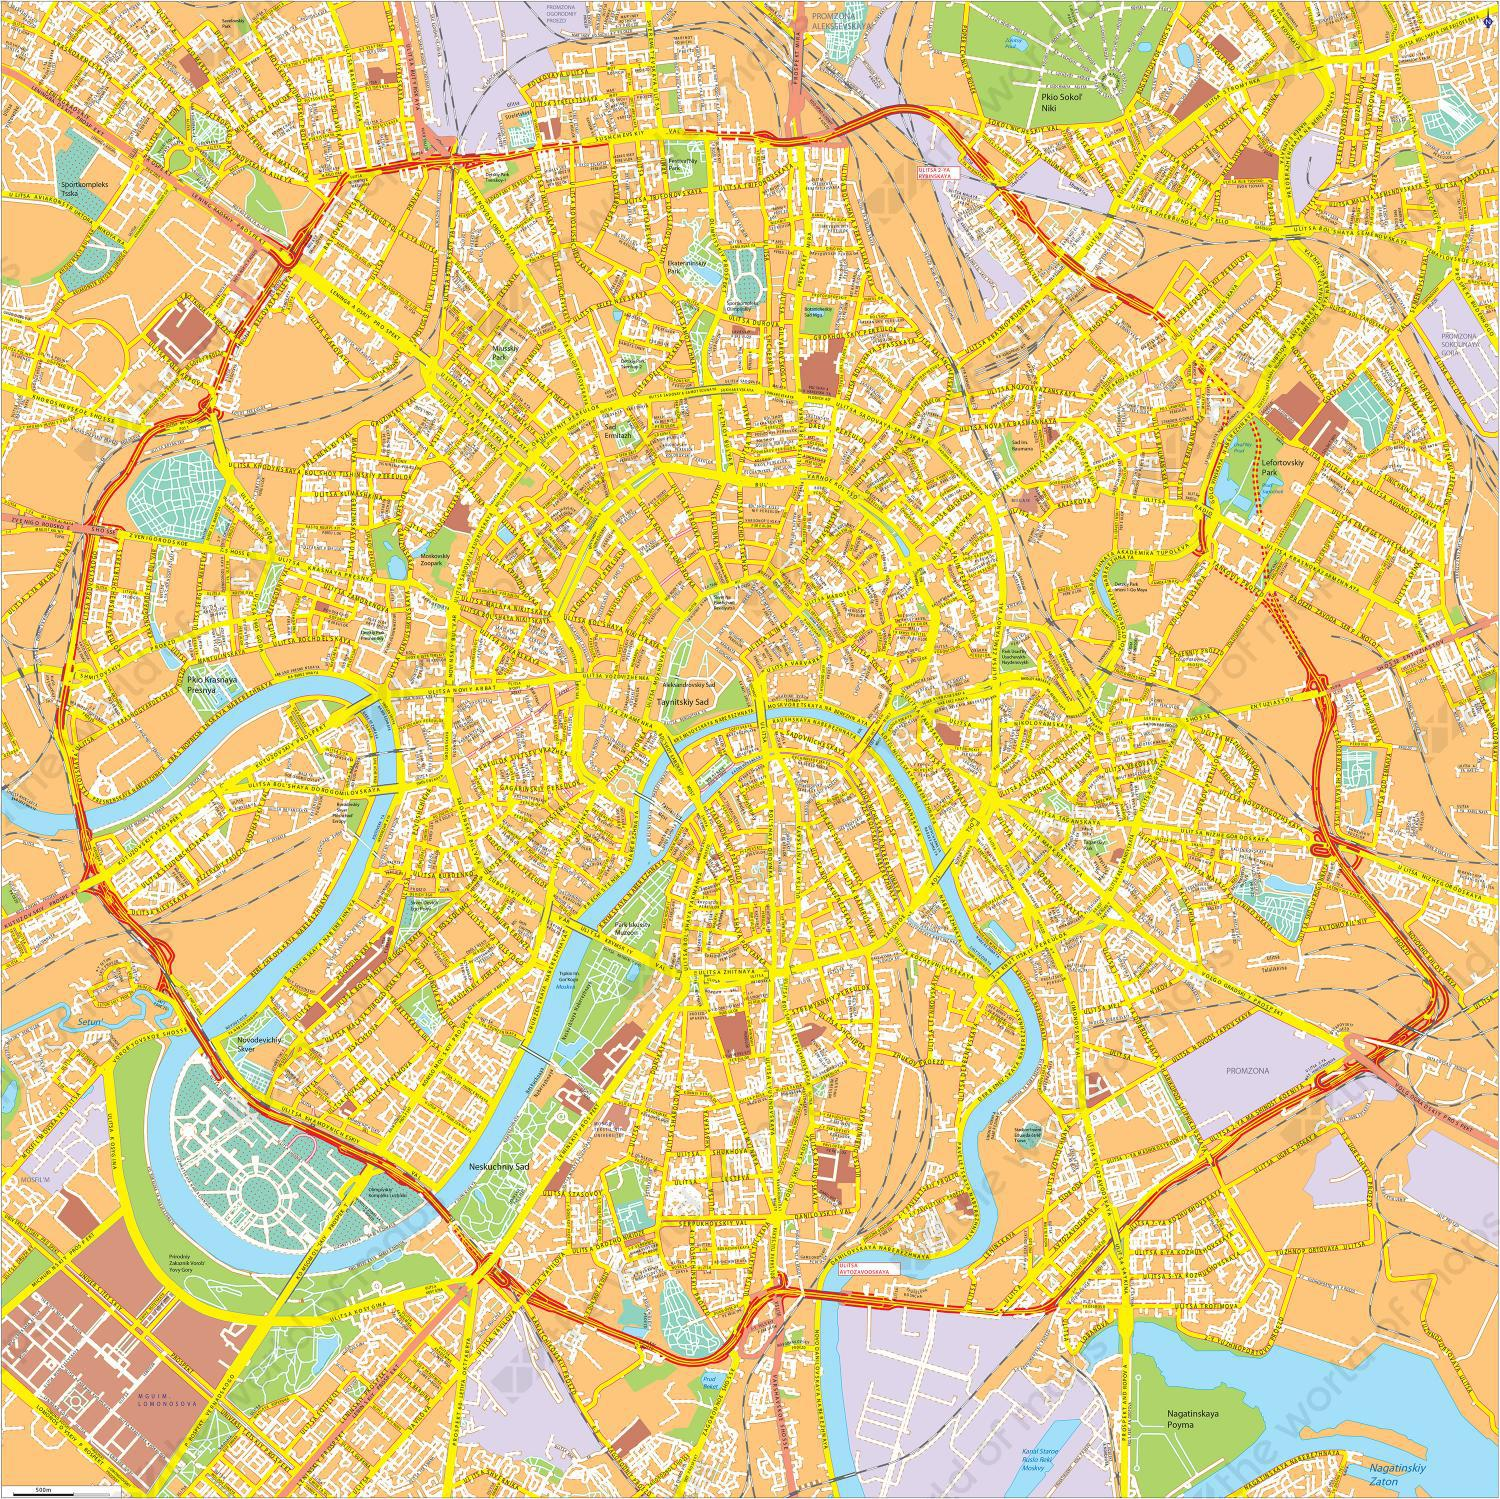 Digital city map moscow 769 the world of maps digitale kaart moskou moscow 769 gumiabroncs